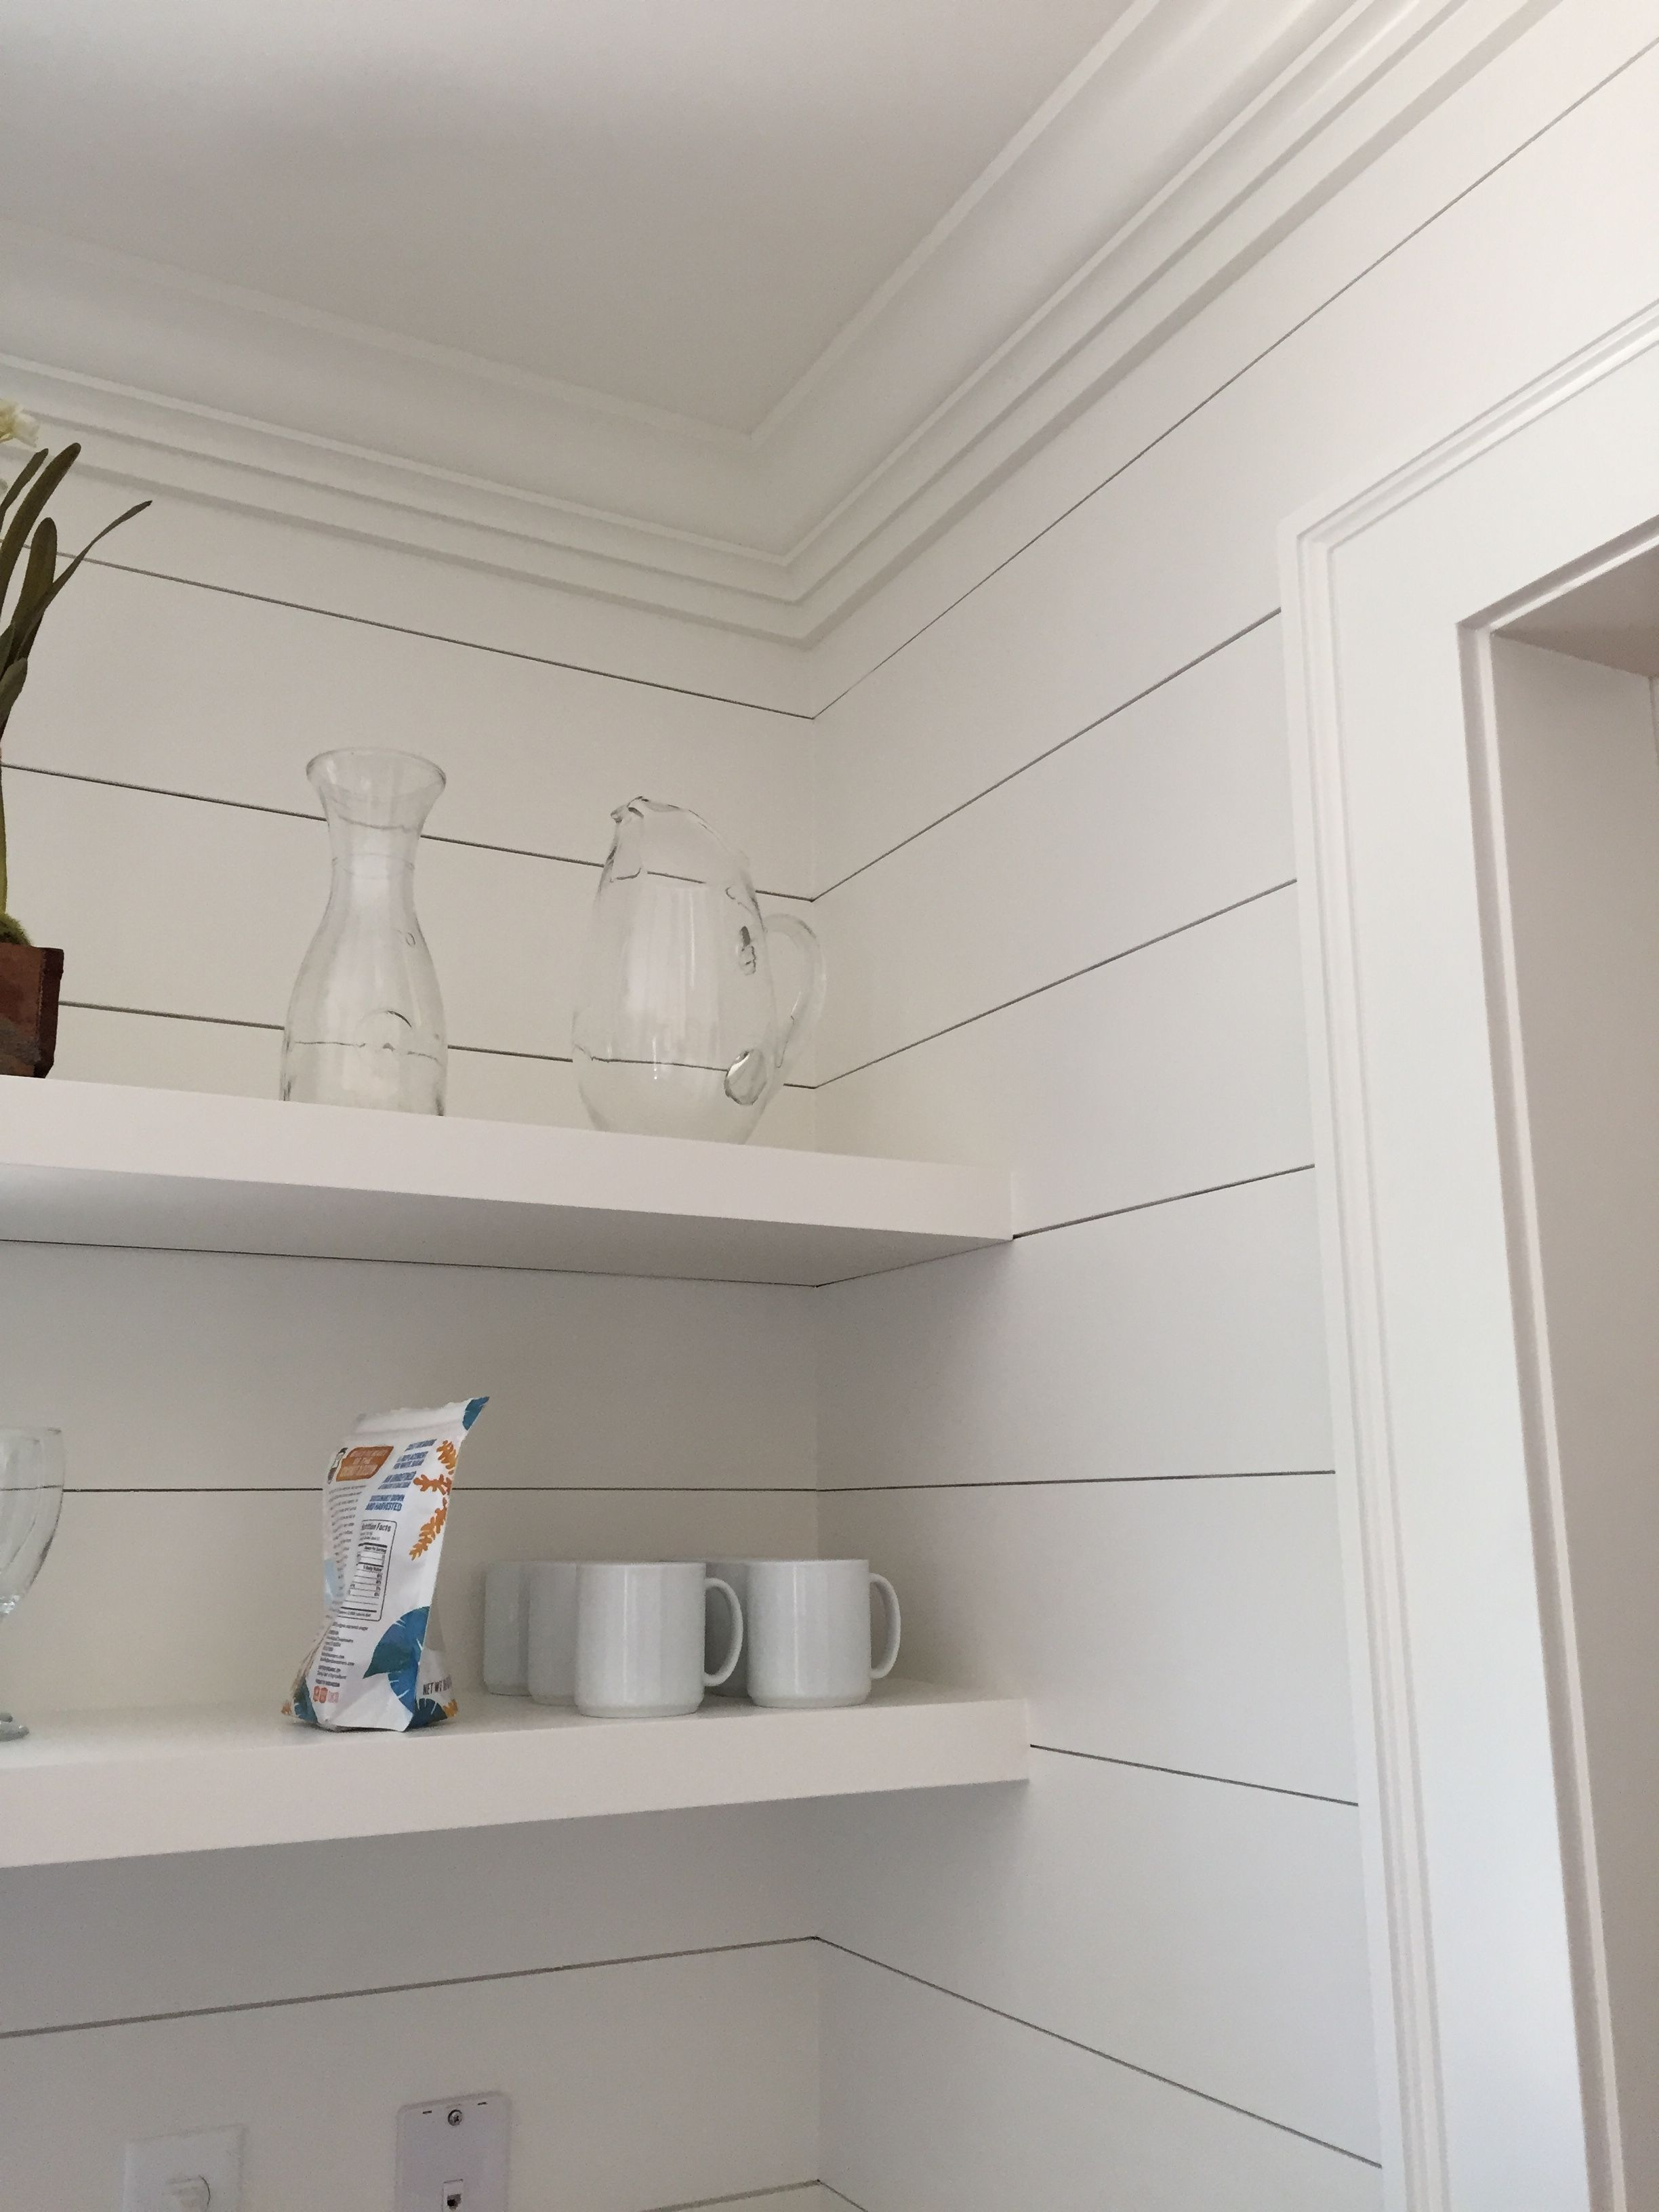 Sherwin williams alabaster 7008 matte walls eggshell finish little house on fisher lane